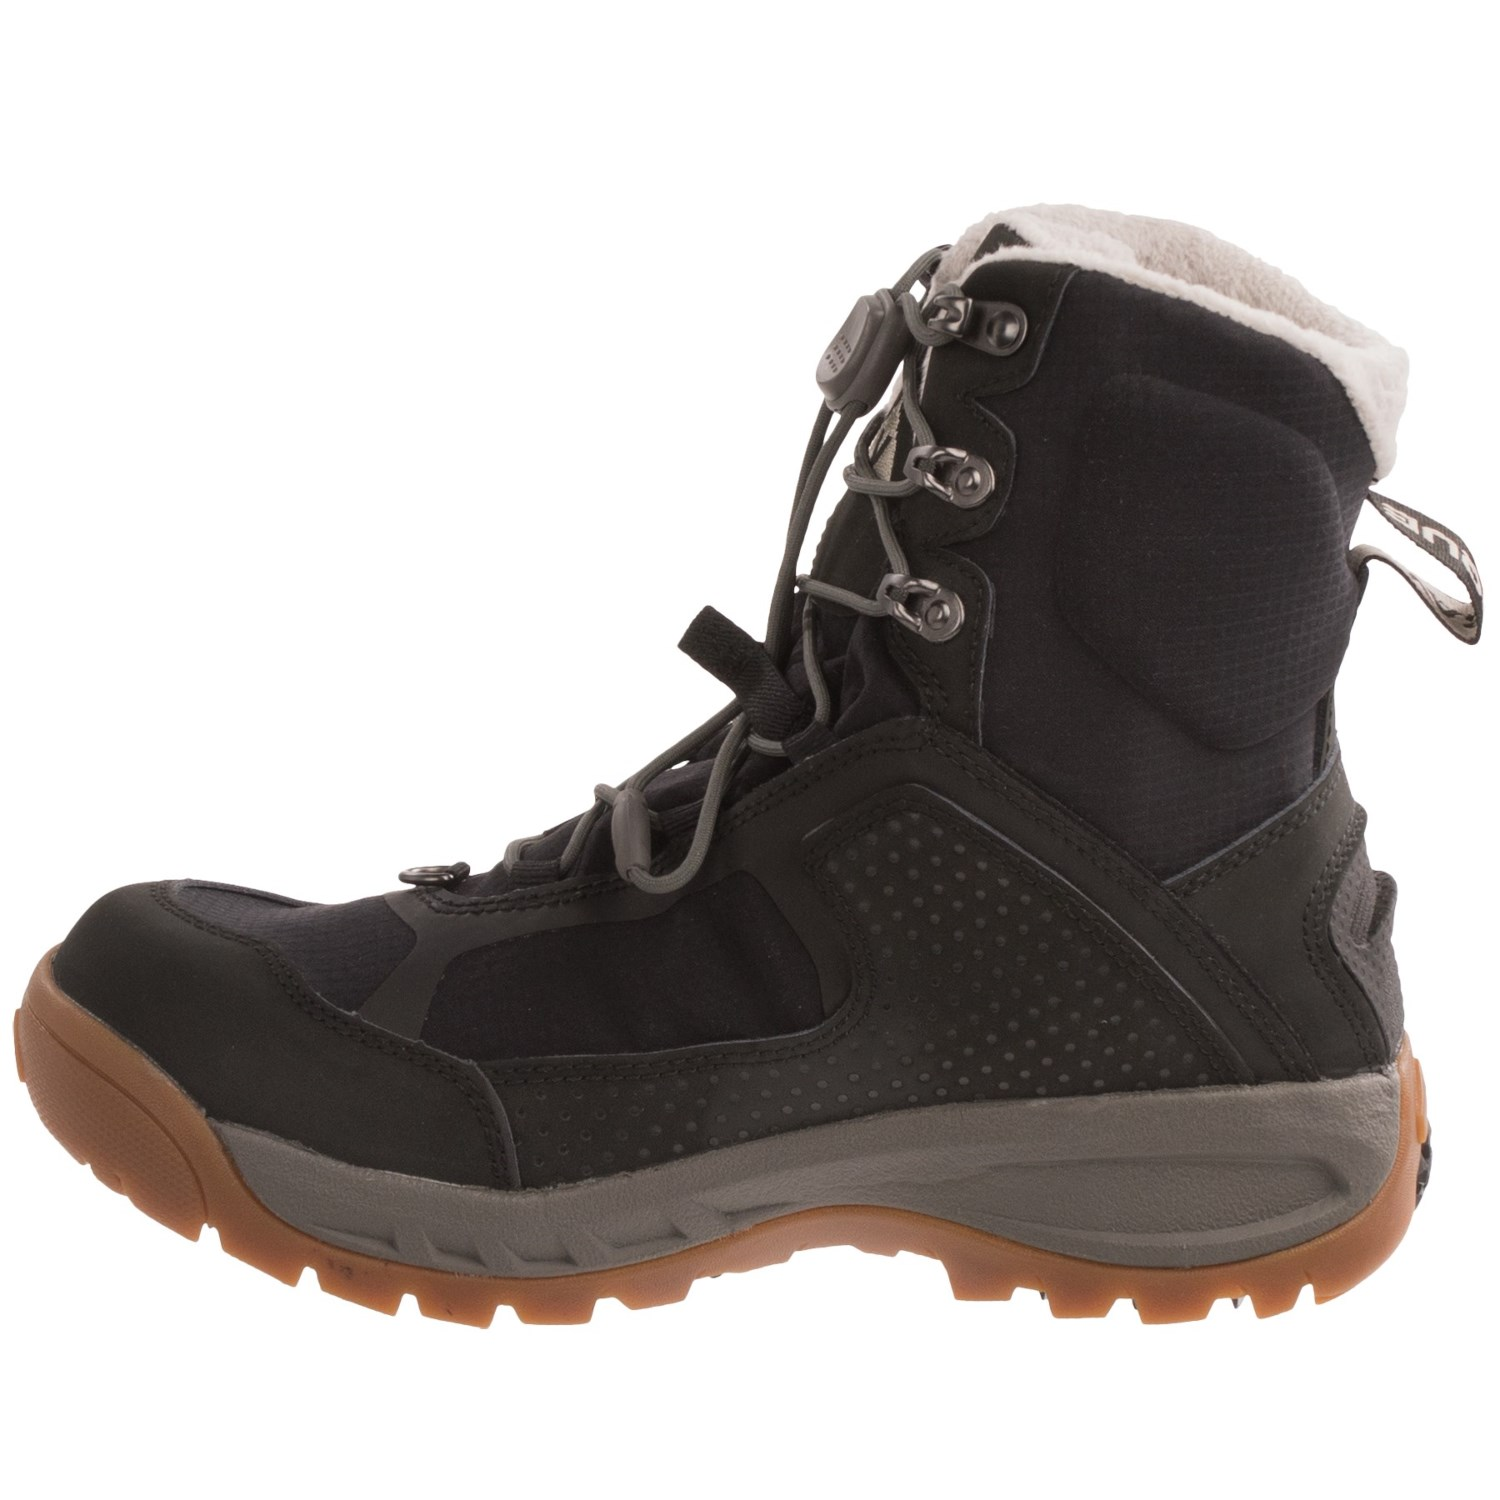 Simple Keen Snow Rover Snow Boots (For Women) 2756W - Save 79%